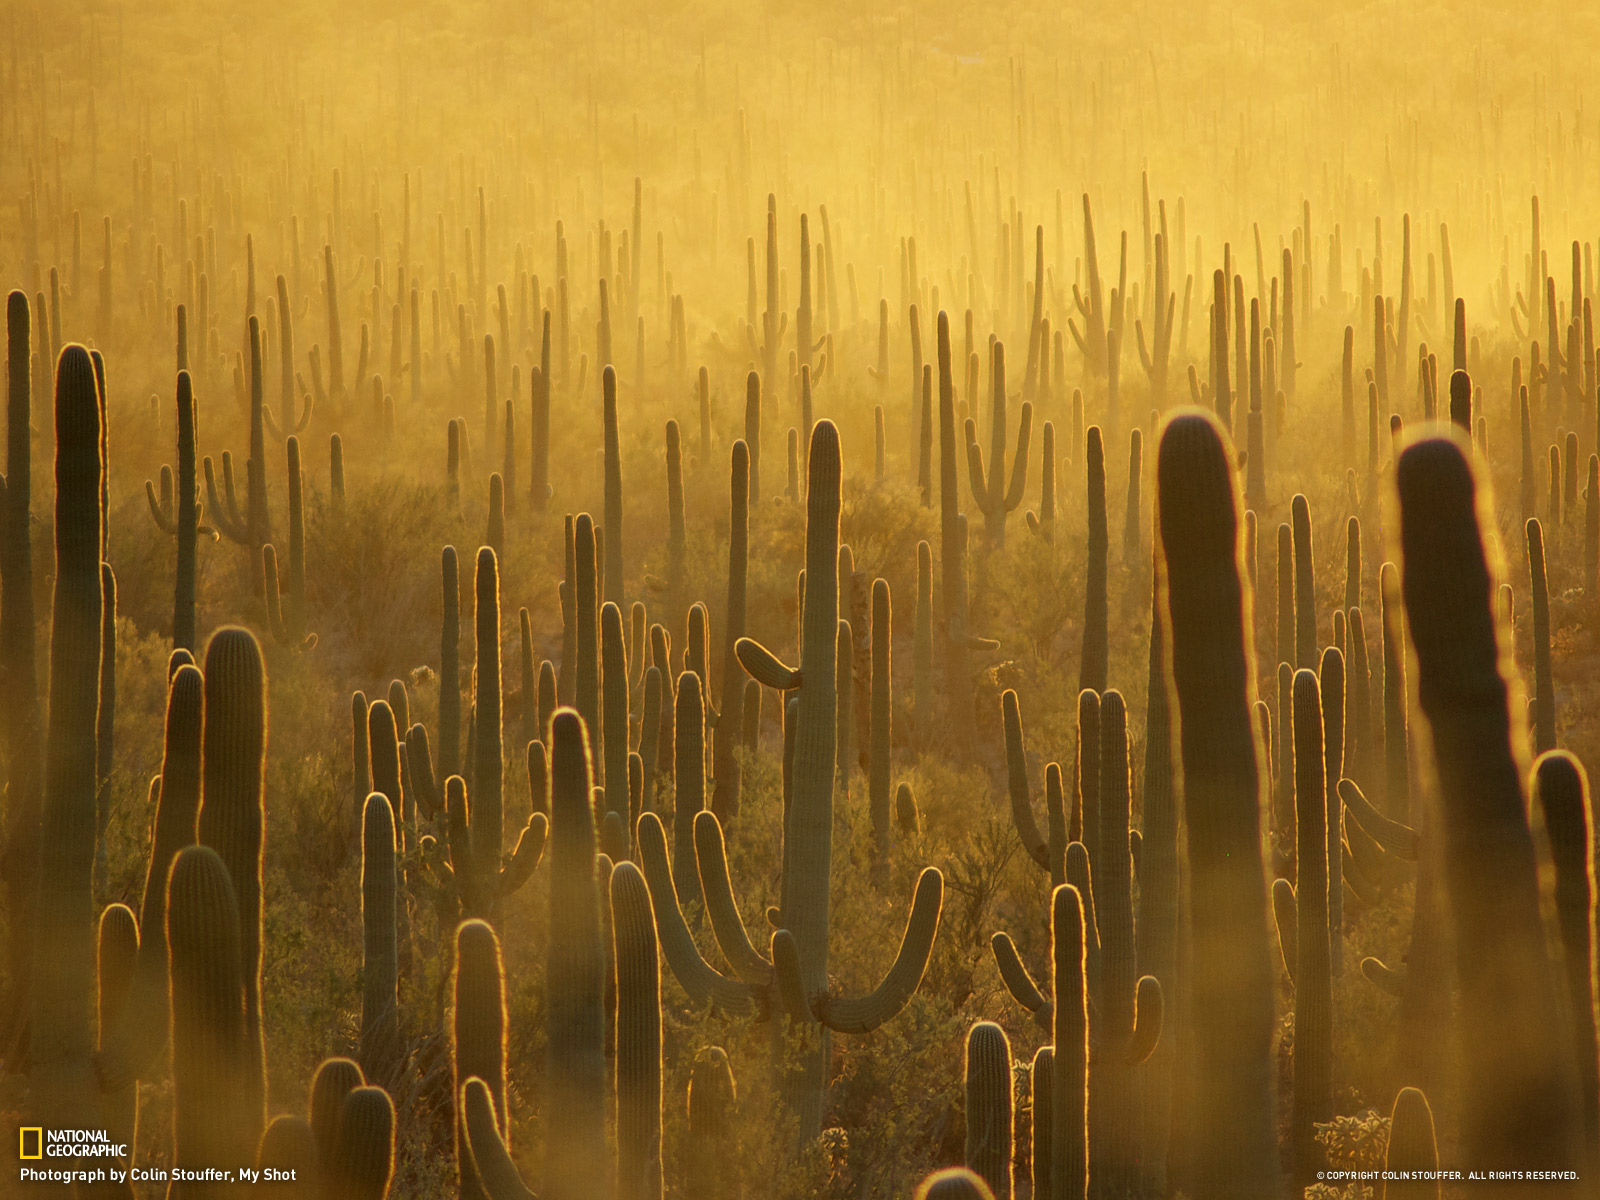 Best 41 Saguaro National Park Wallpaper on HipWallpaper 1600x1200